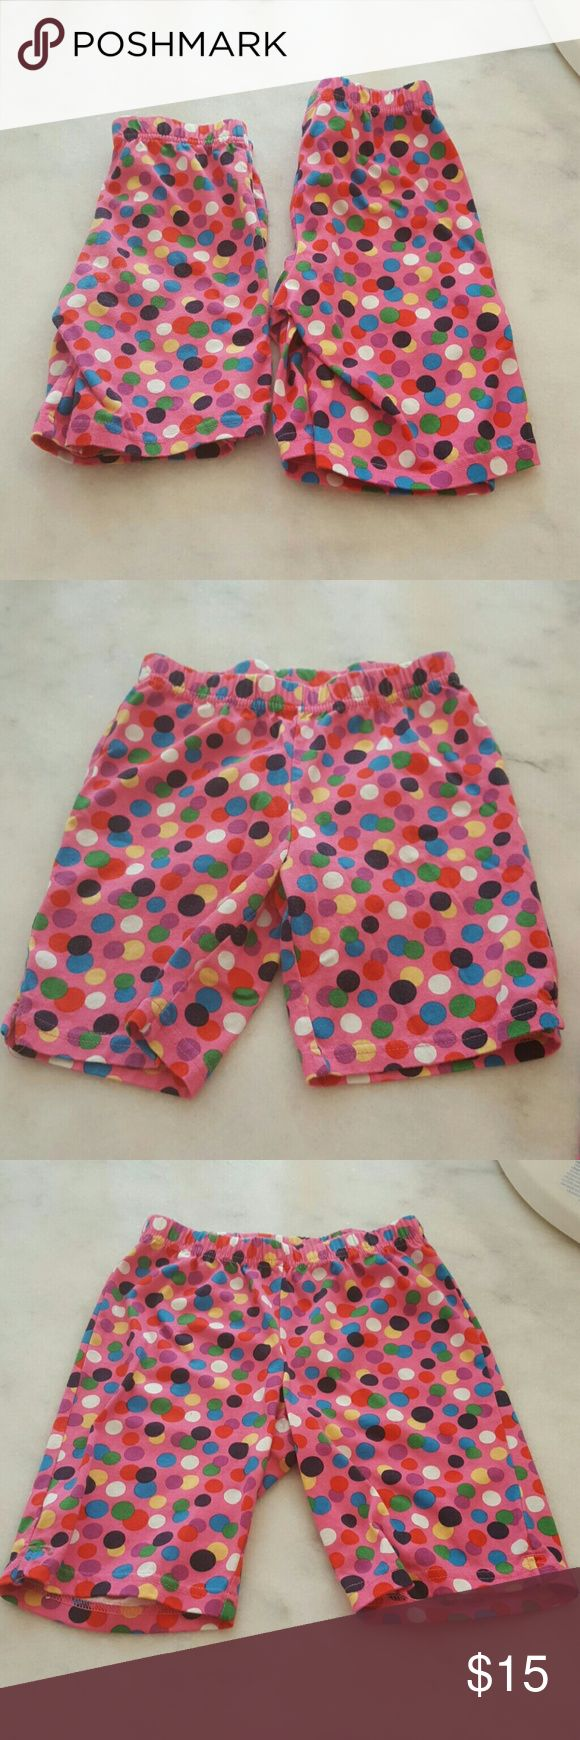 Hanna Anderson Shorts 2 pairs of polka Dot Shorts  Sizes 110 (5-6x) and 130 (8-10) girls Gently Worn  100% Cotton Machine Wash warm inside out and Tumble Dry low Hanna Andersson Bottoms Shorts